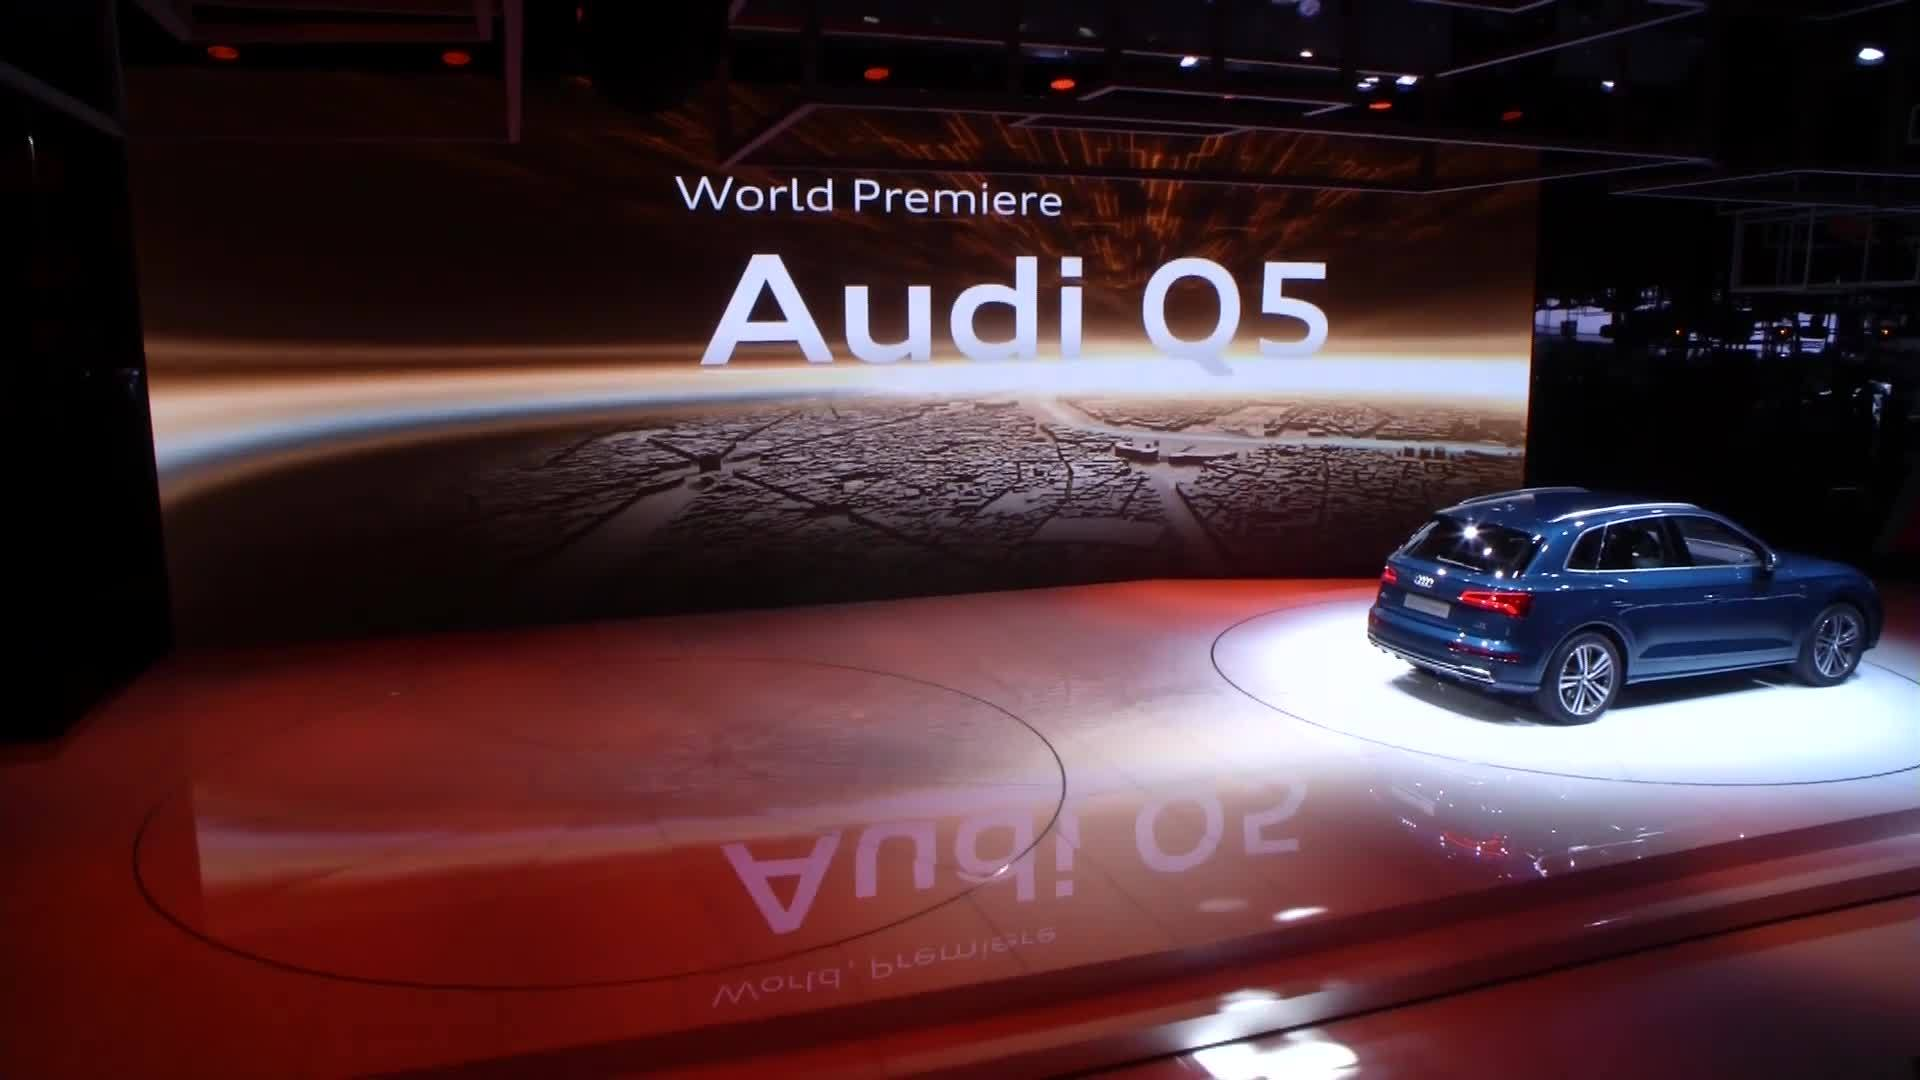 Die Audi-Highlights vom Pariser Automobilsalon